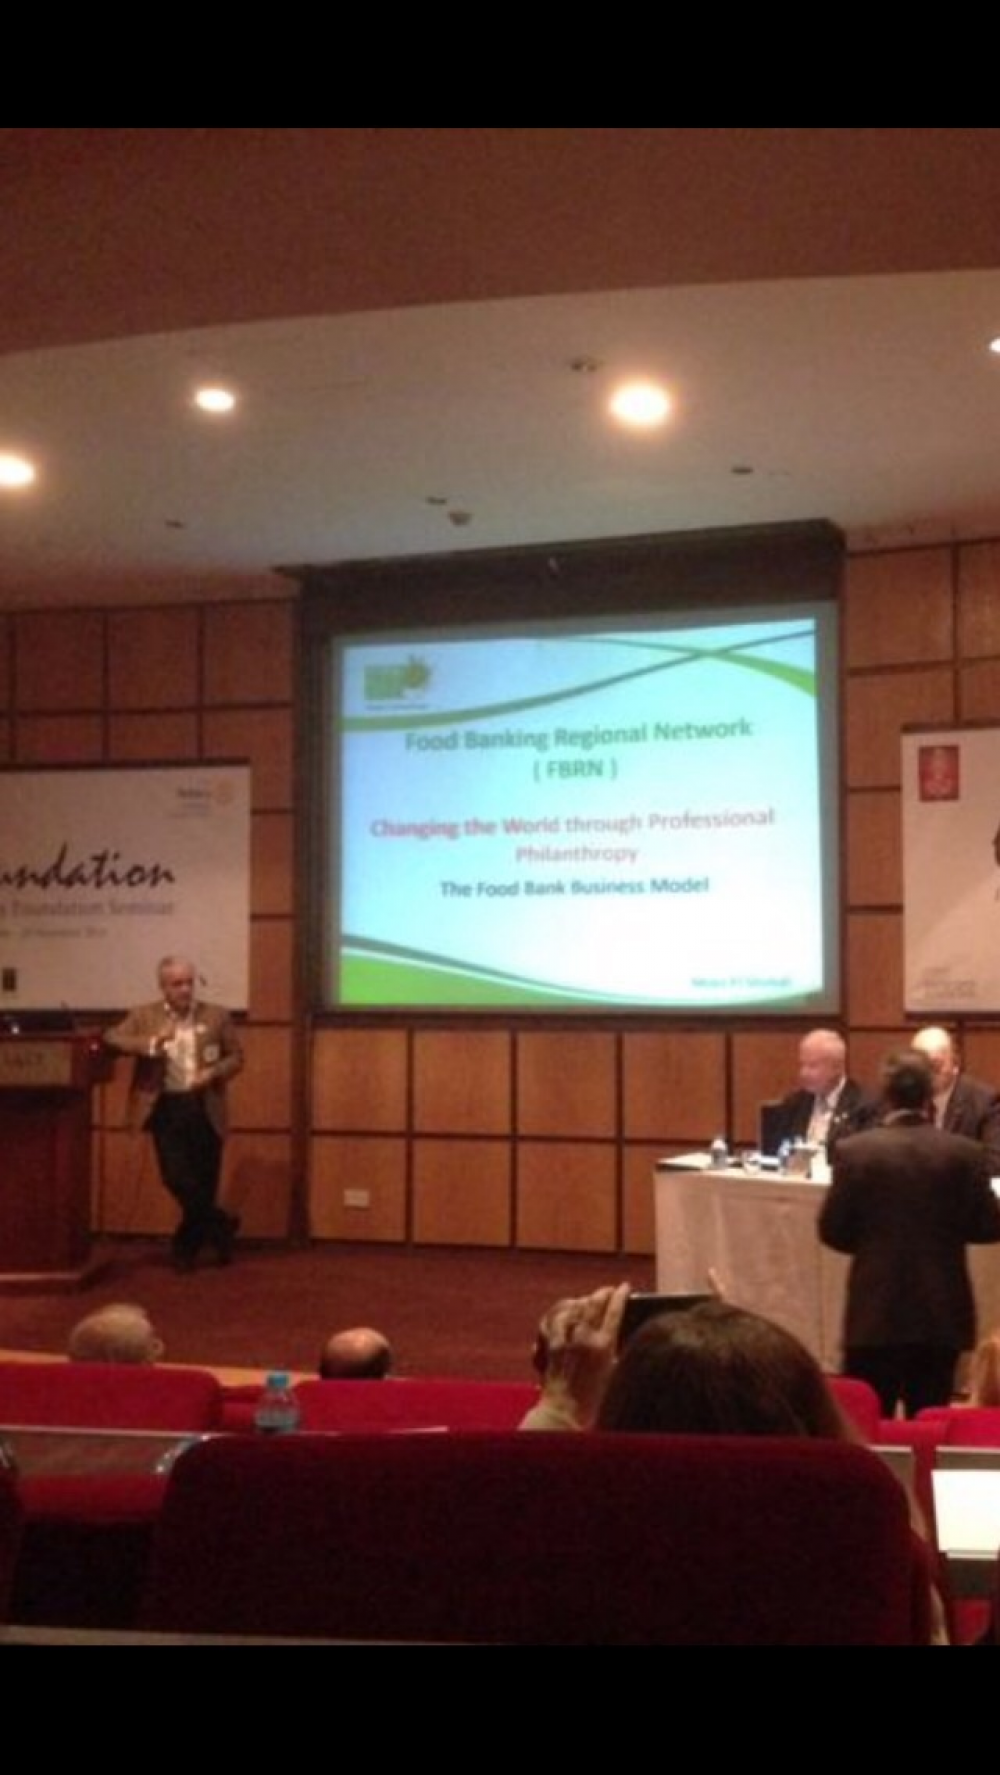 Food Banking Model in the 2452 Rotary District Conference in Amman